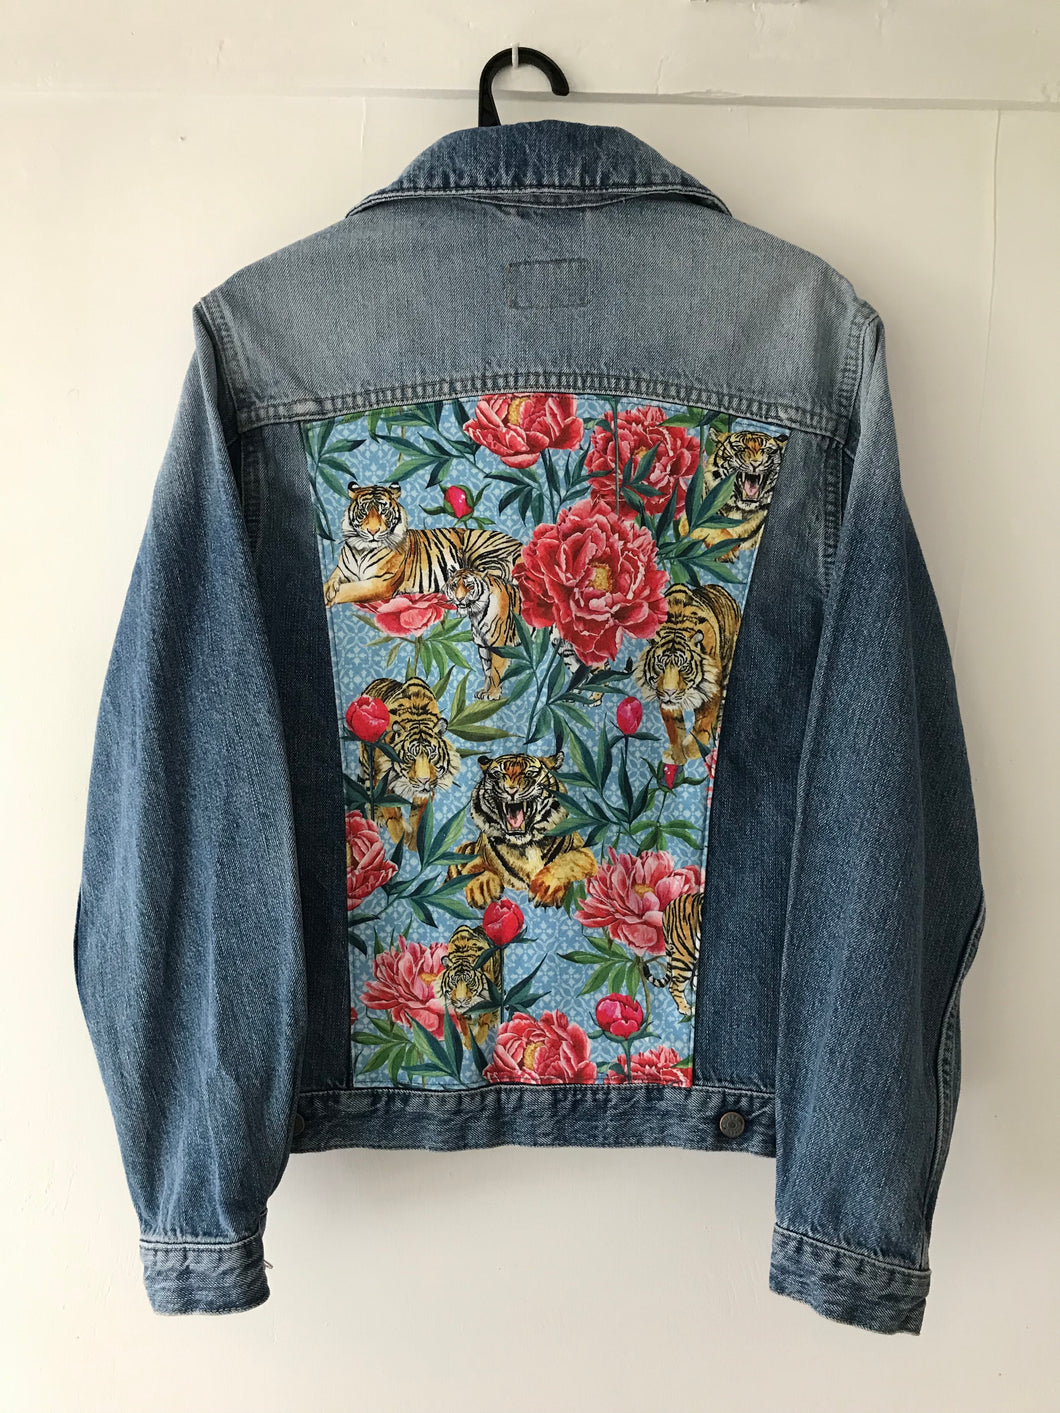 'Rifle' denim jacket, Tigers & Peonies design